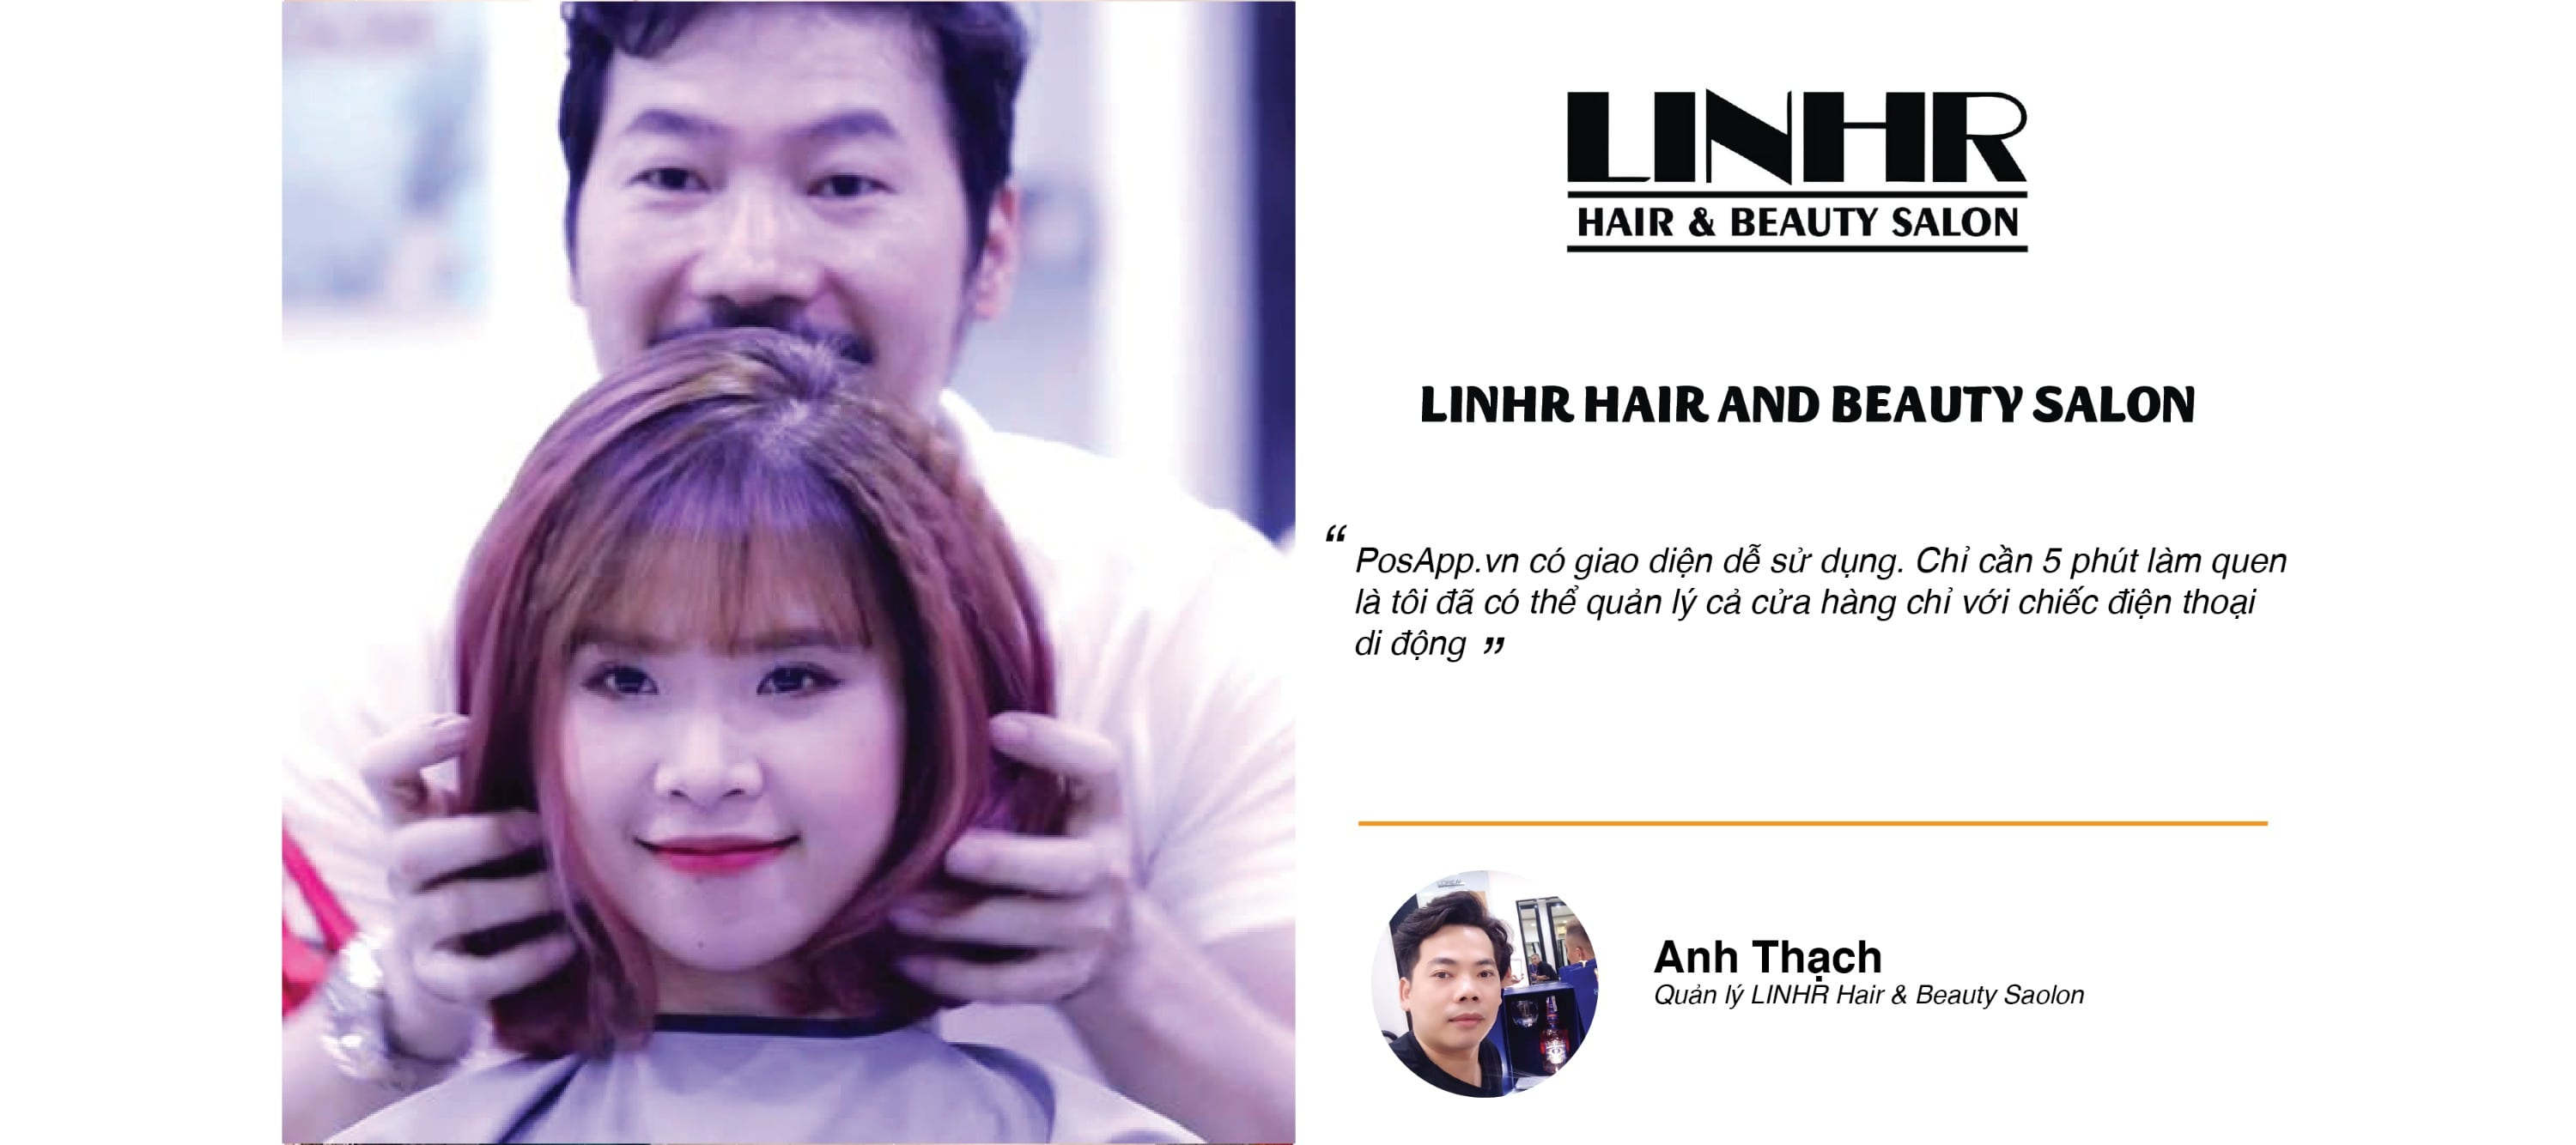 linh hair salon